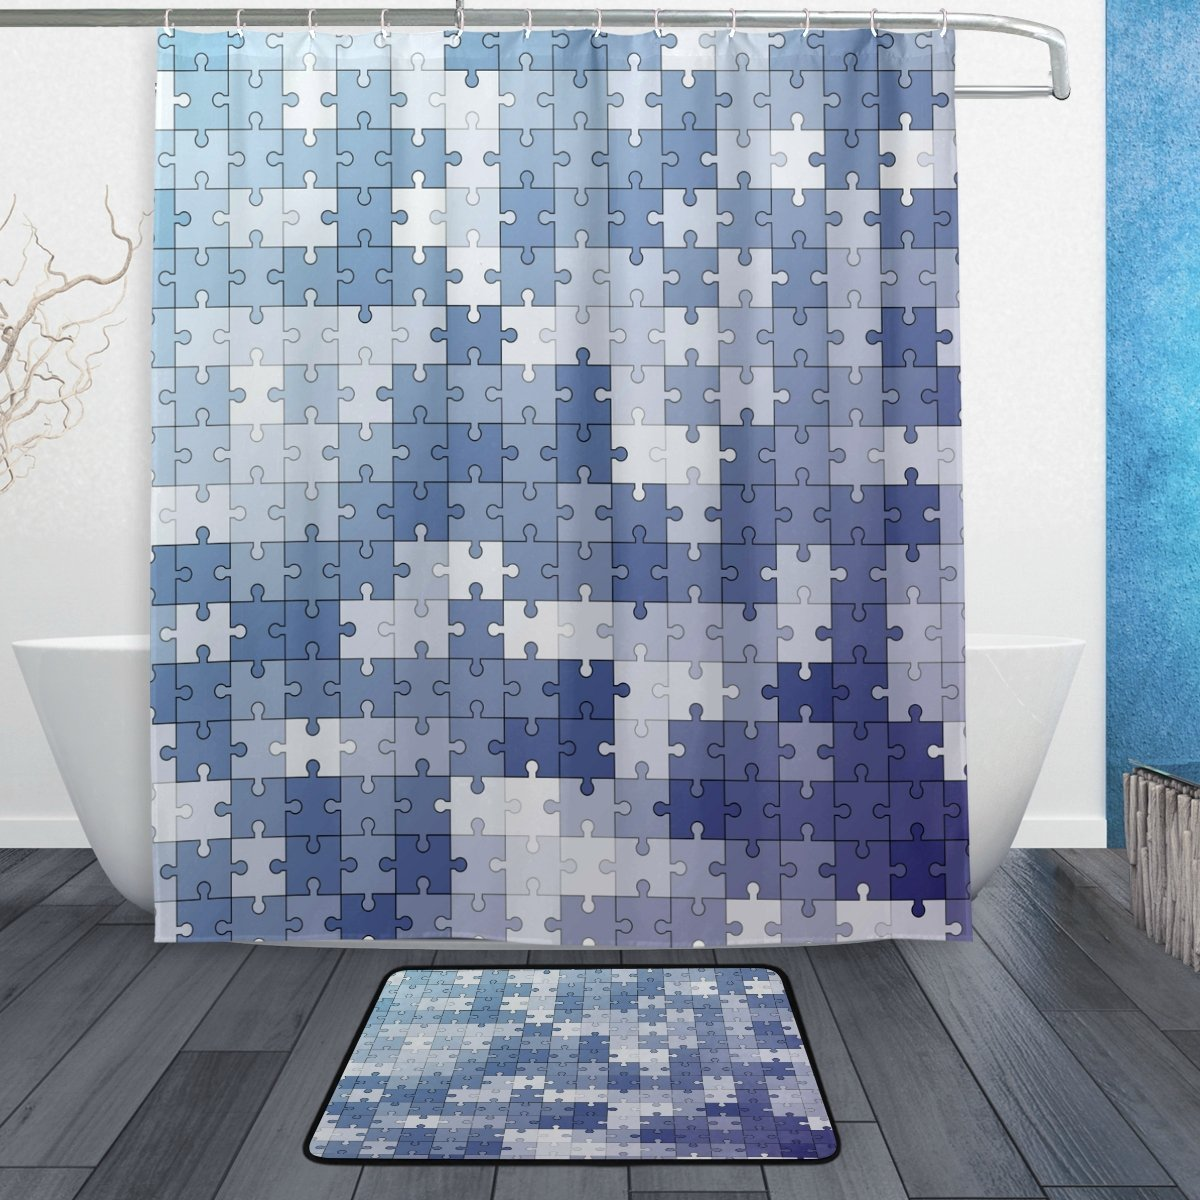 Marine Blue Abstract Puzzle Waterproof Polyester Fabric Shower Curtain with Hooks Doormat Bath Floor Mat Bathroom Home Decor